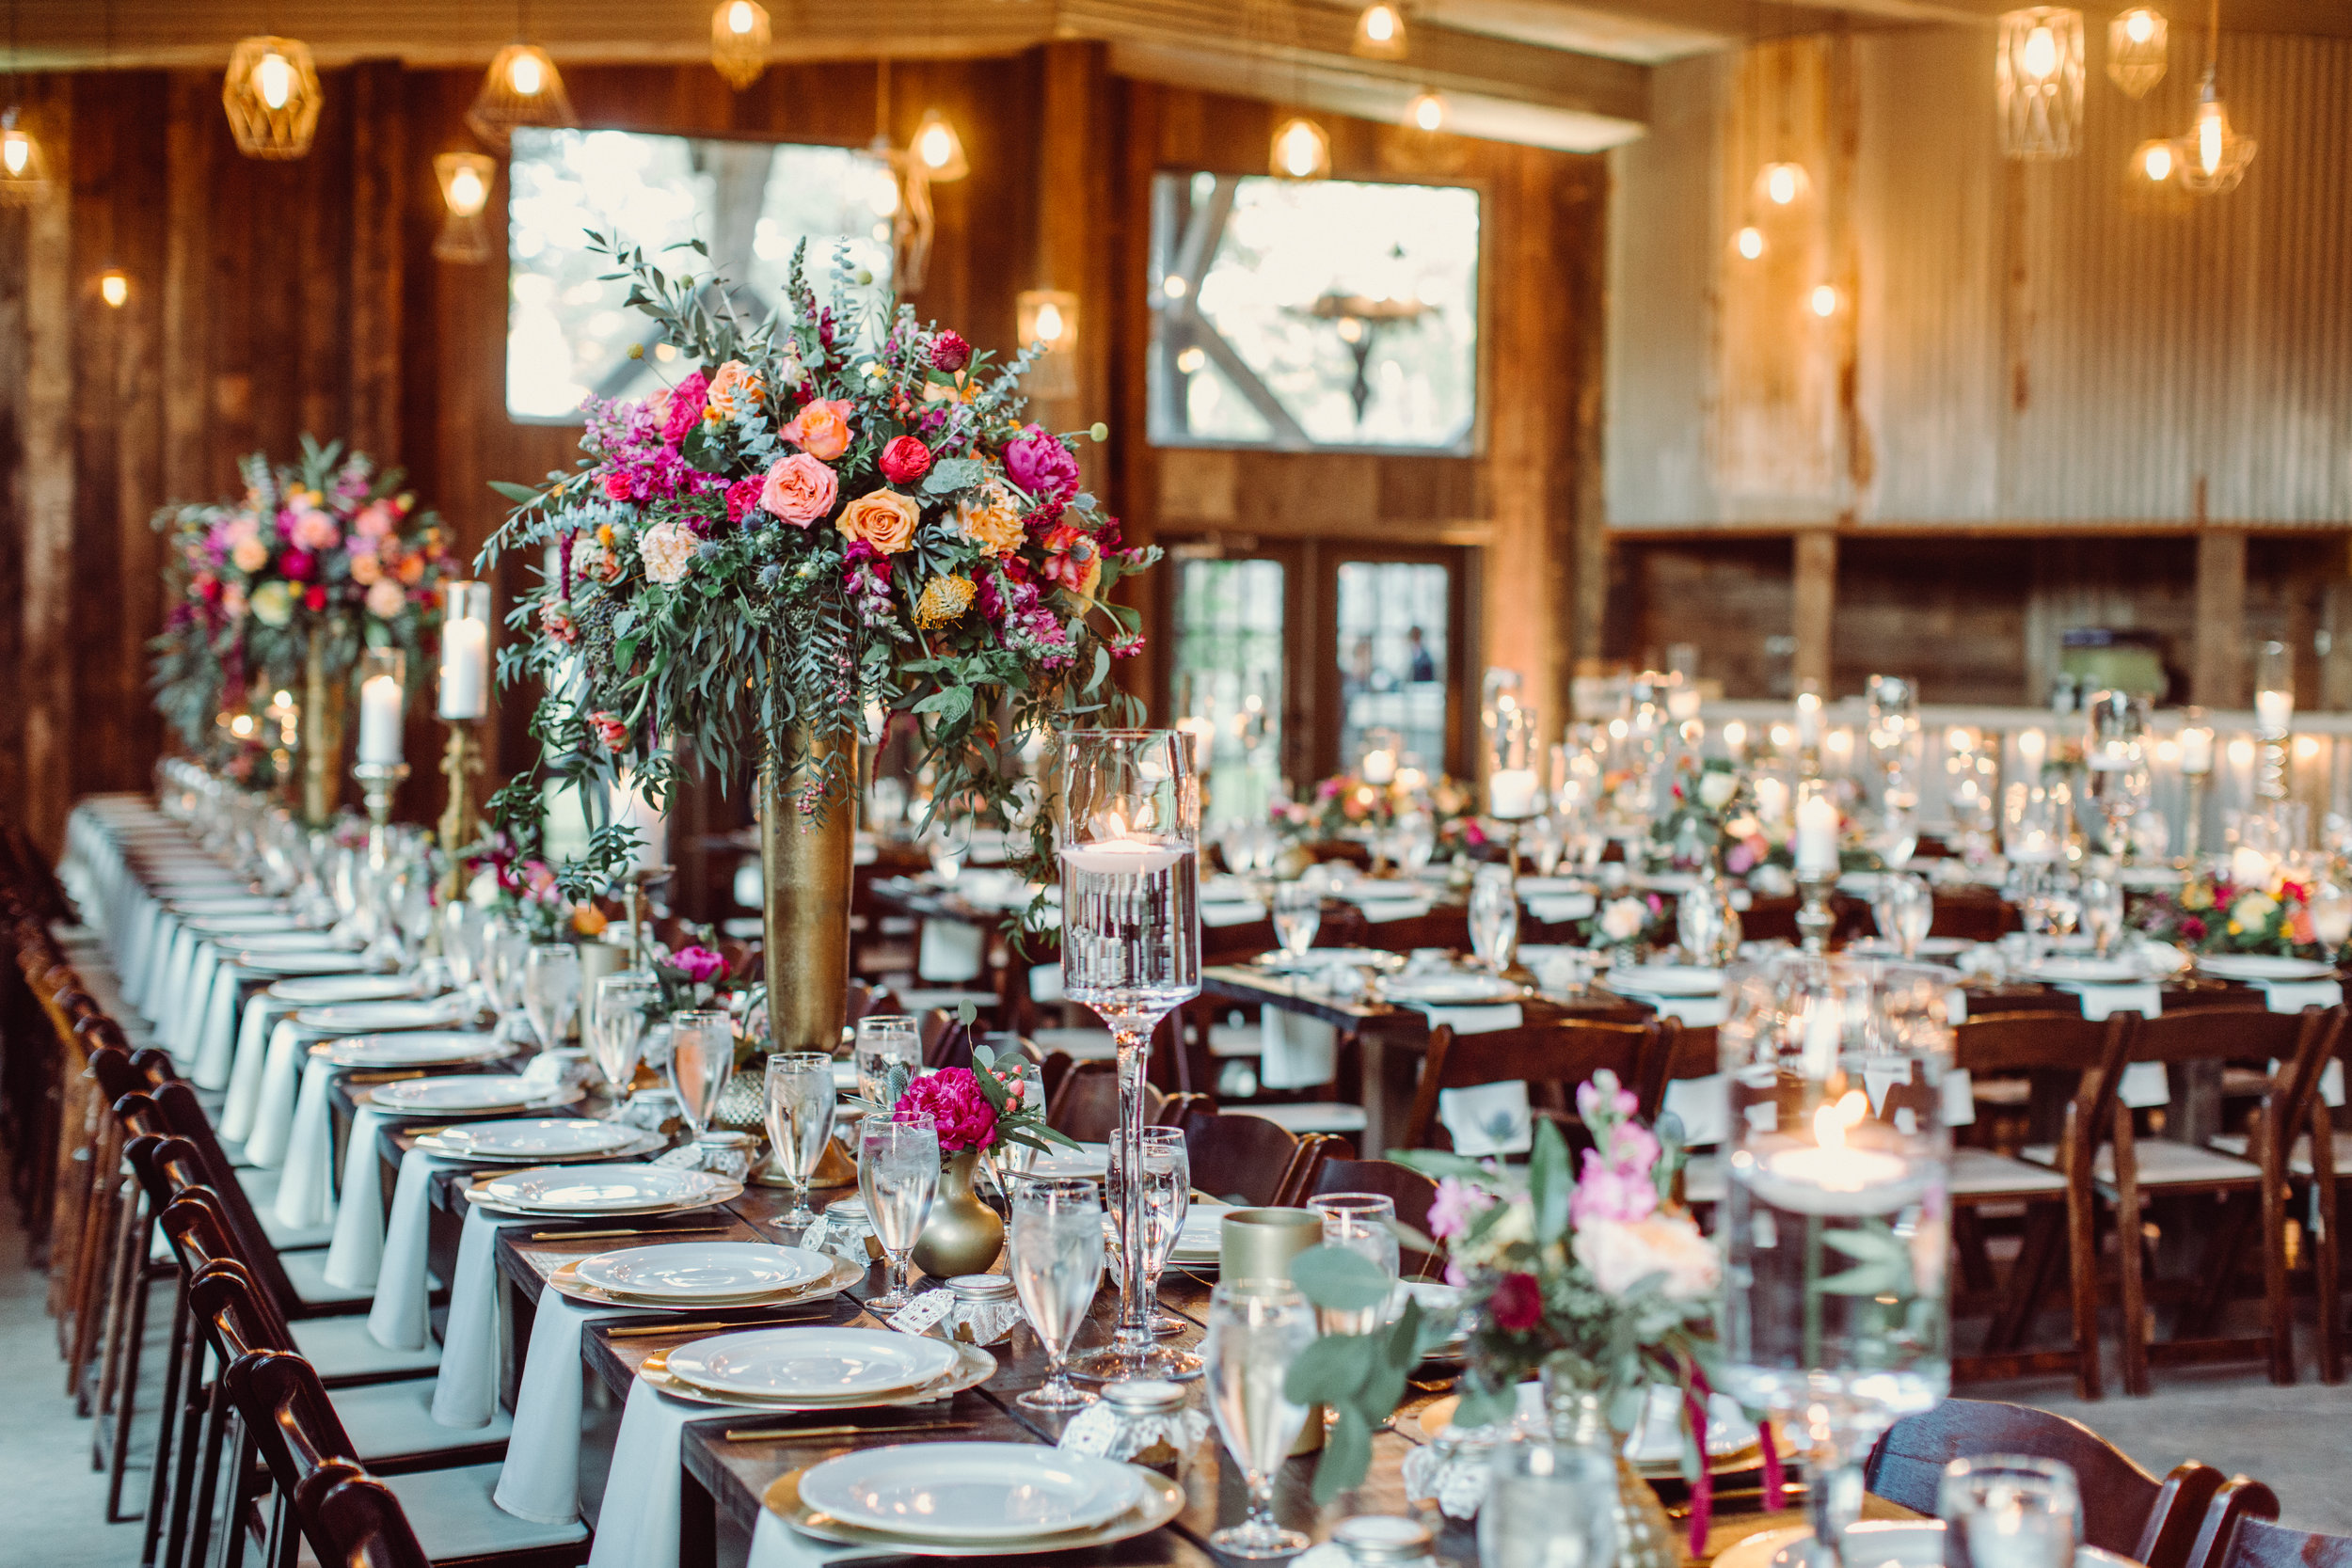 the-creek-haus-petal-pushers-sweetheart-table-fireplace-wedding-venue-reception-barn-decor